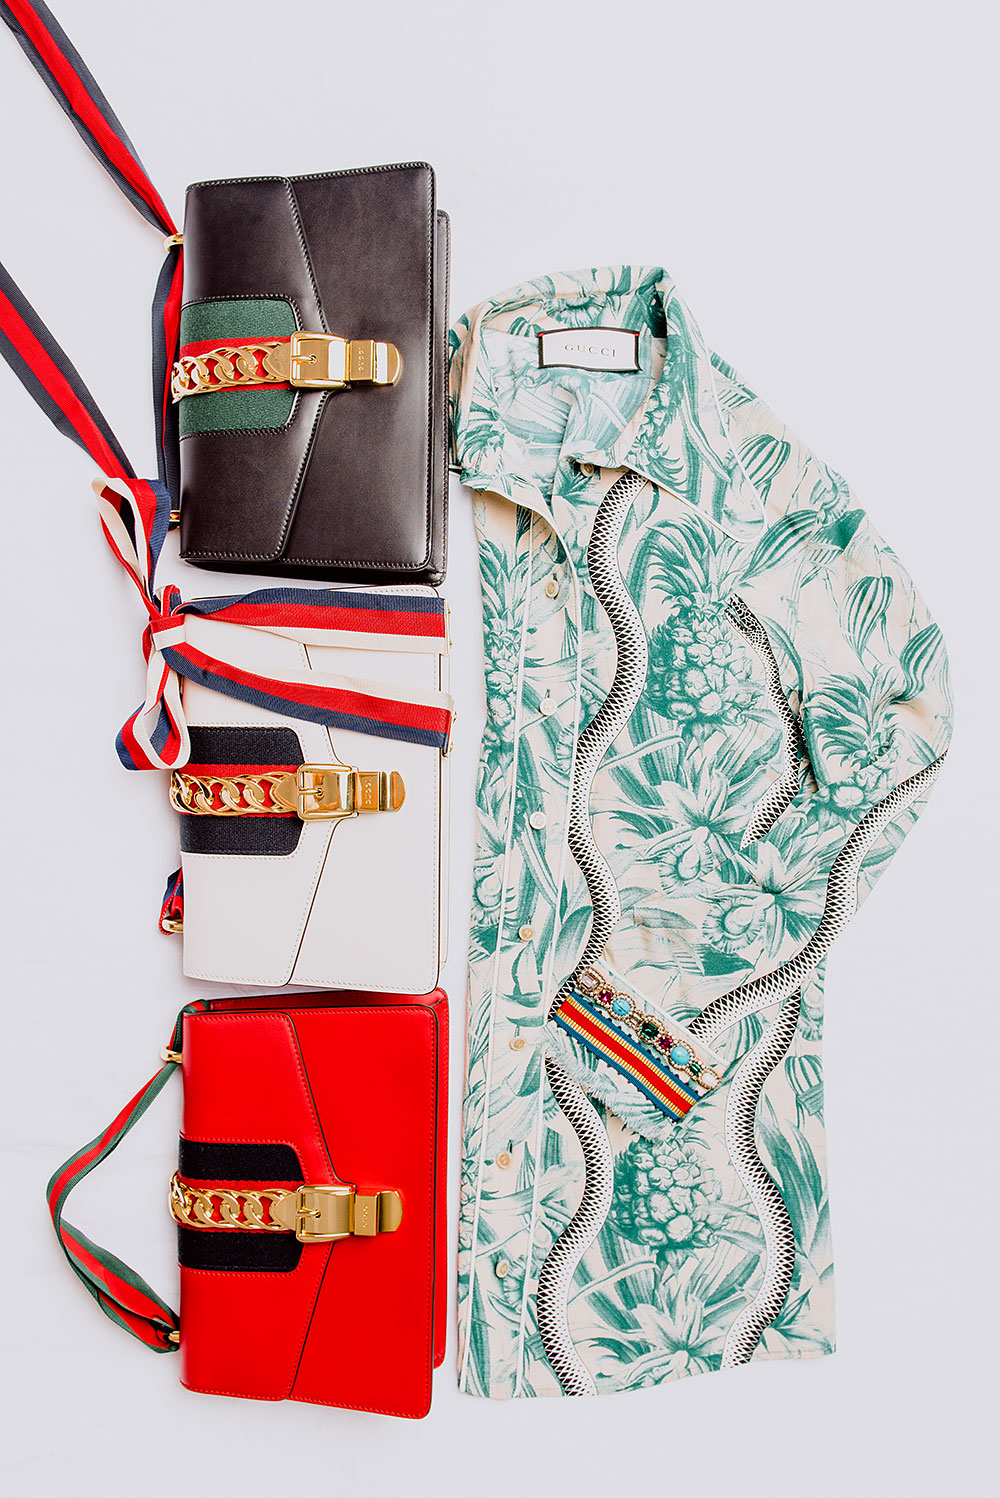 GUCCI SYLVIE BAG IN BLACK, OFF-WHITE, RED AND GUCCI SNAKE PRINT CRÊPE DE CHINE SHIRT,